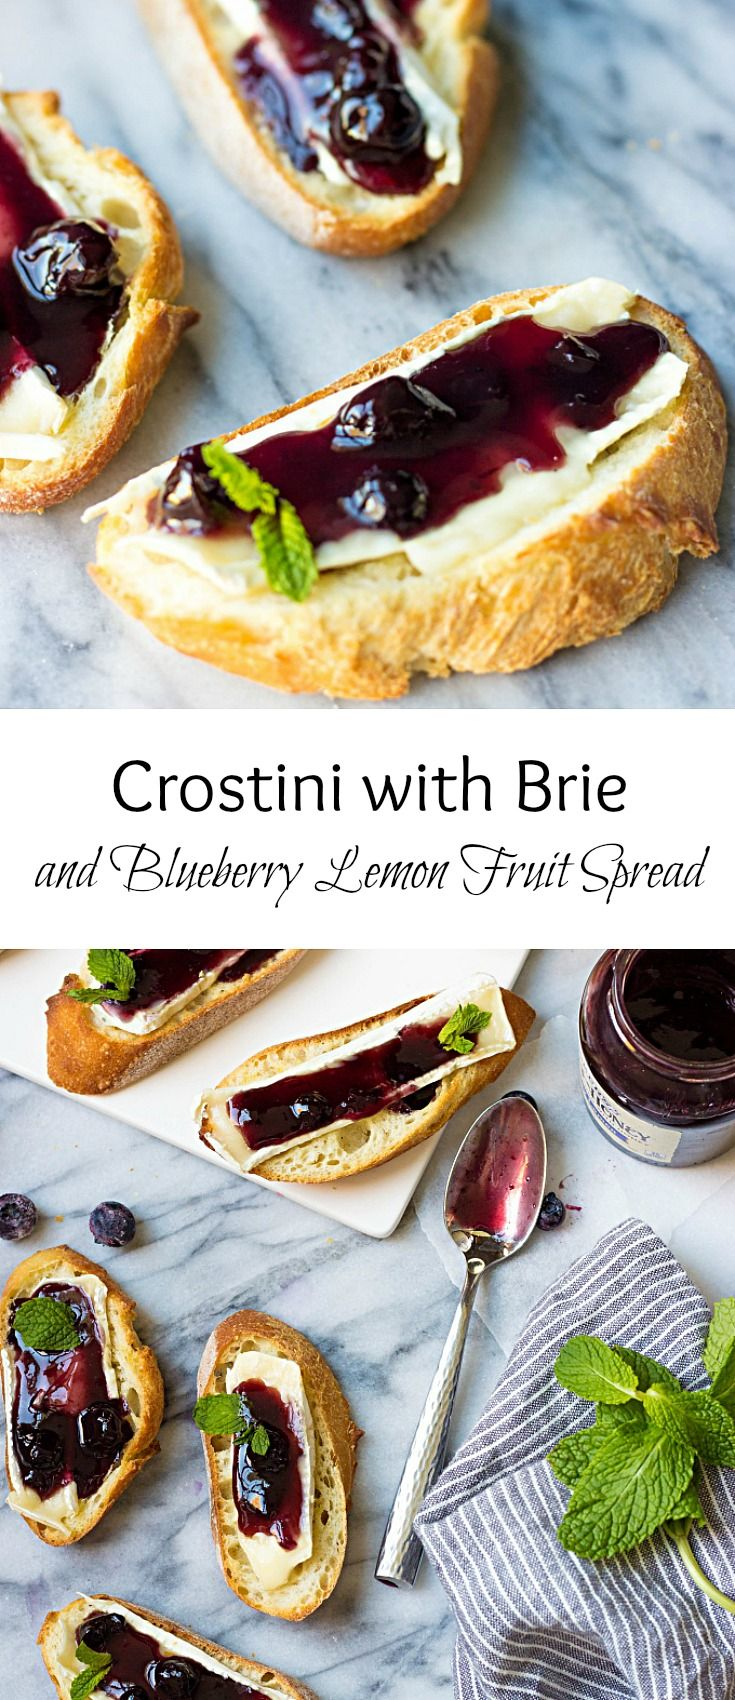 Delicious holiday appetizer made in under 10 minutes. These Crostini with Brie and Blueberry Lemon Fruit Spread are excellent party-starters. #EasyHolidayEats #ad